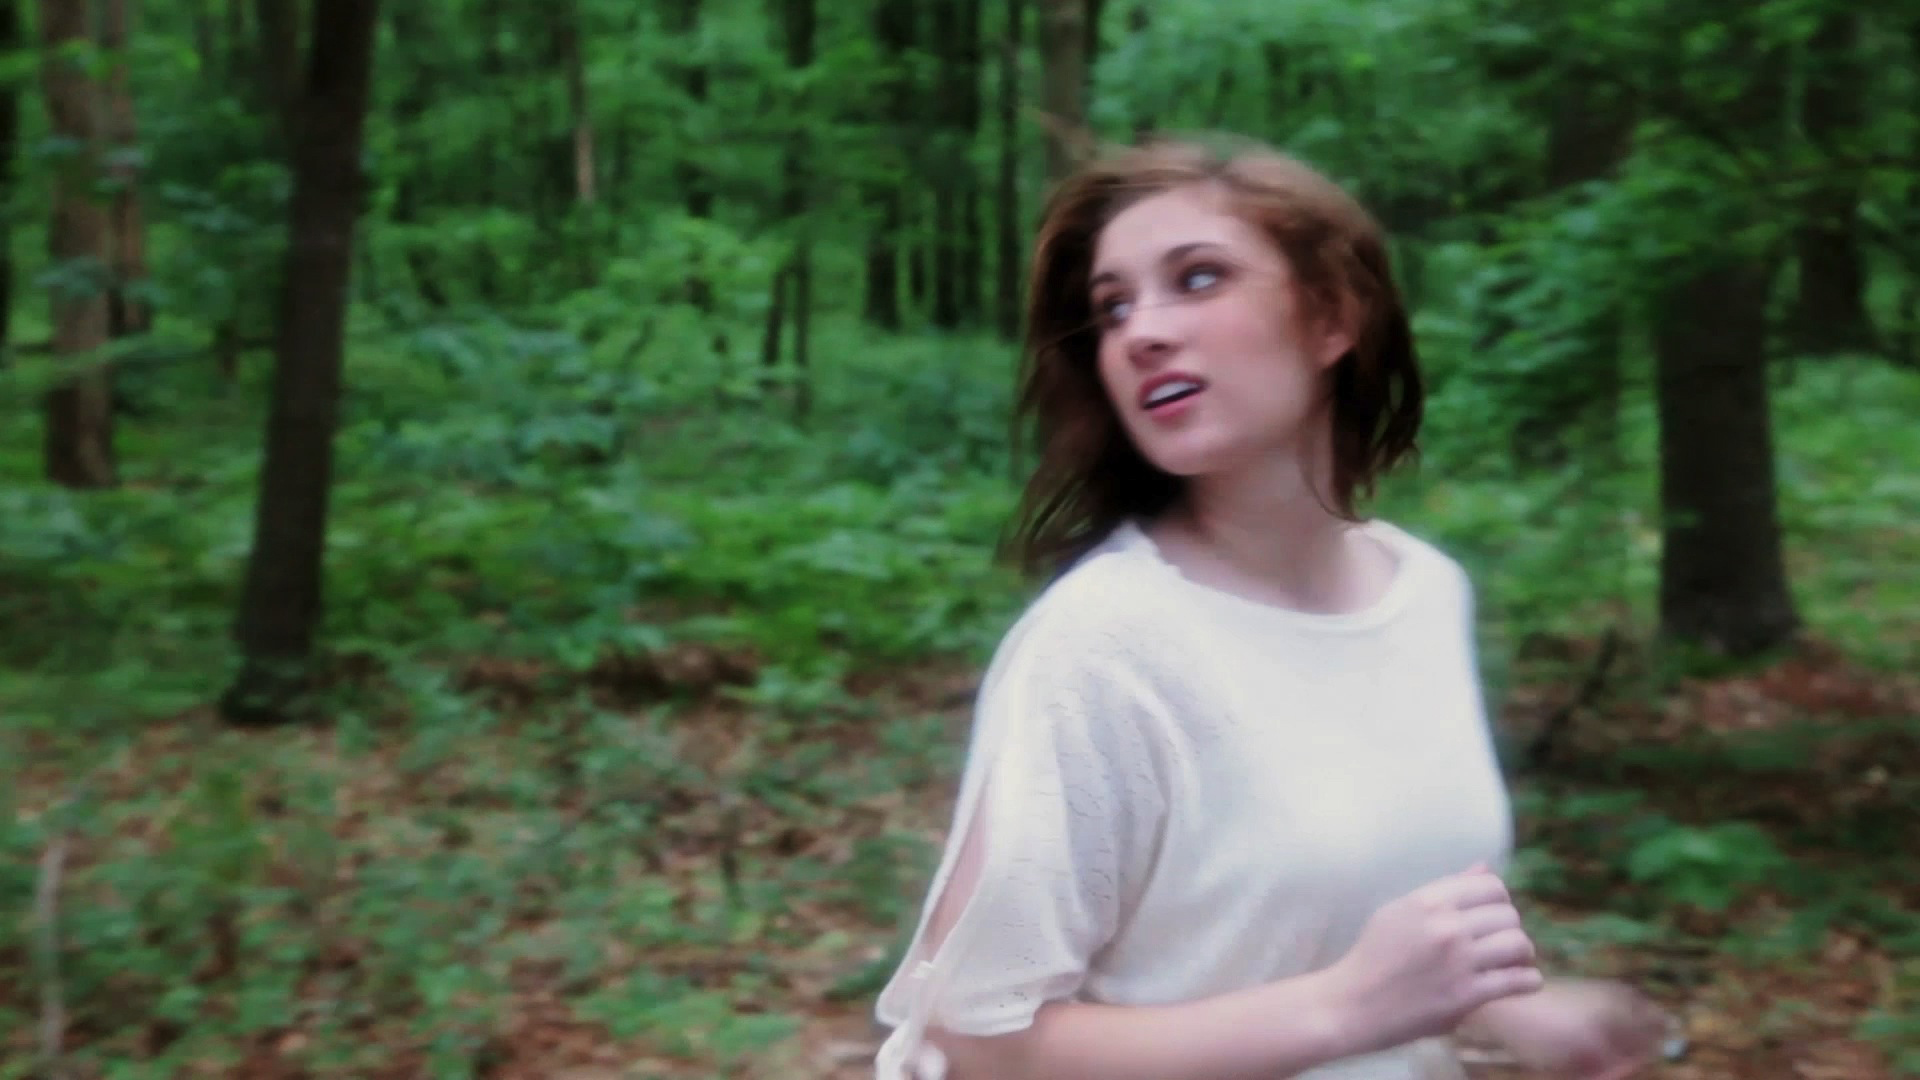 Chelsea Ross Miller in Geena Matuson's (@geenamatuson) thesis film 'My Big Bad Wolf' (2013), filmed in Ponkapoag, MA.